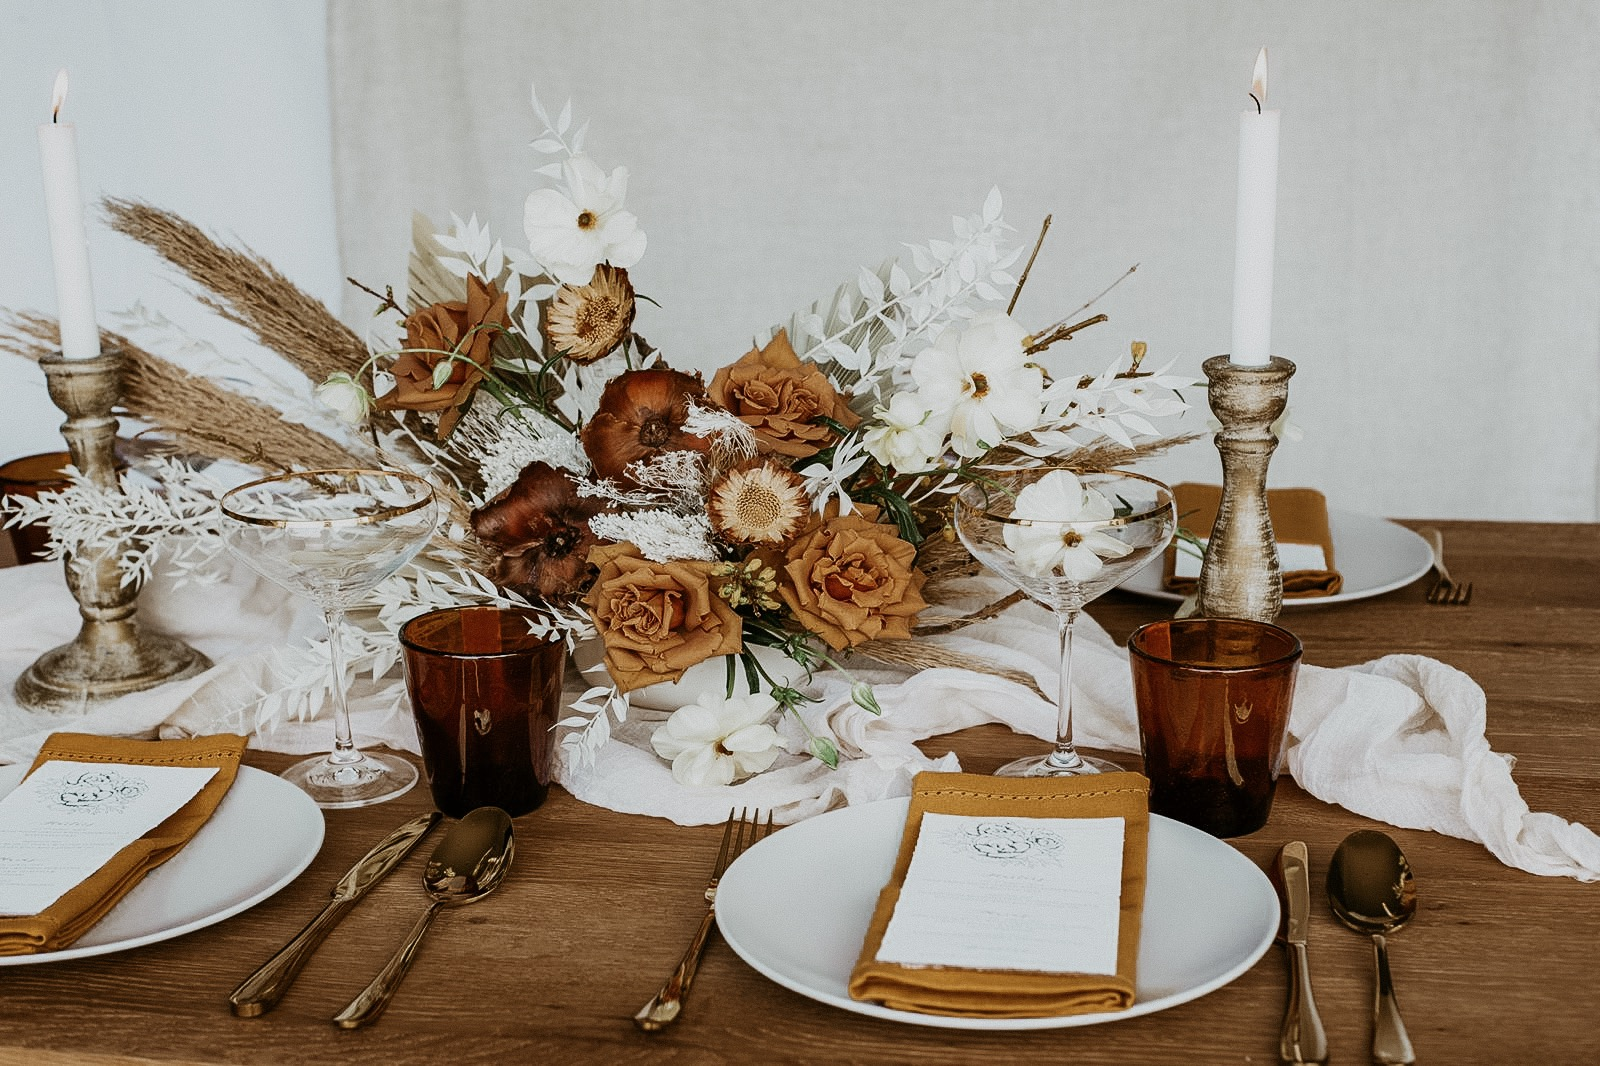 Autumnal wedding styling by rebecca brennan-brown